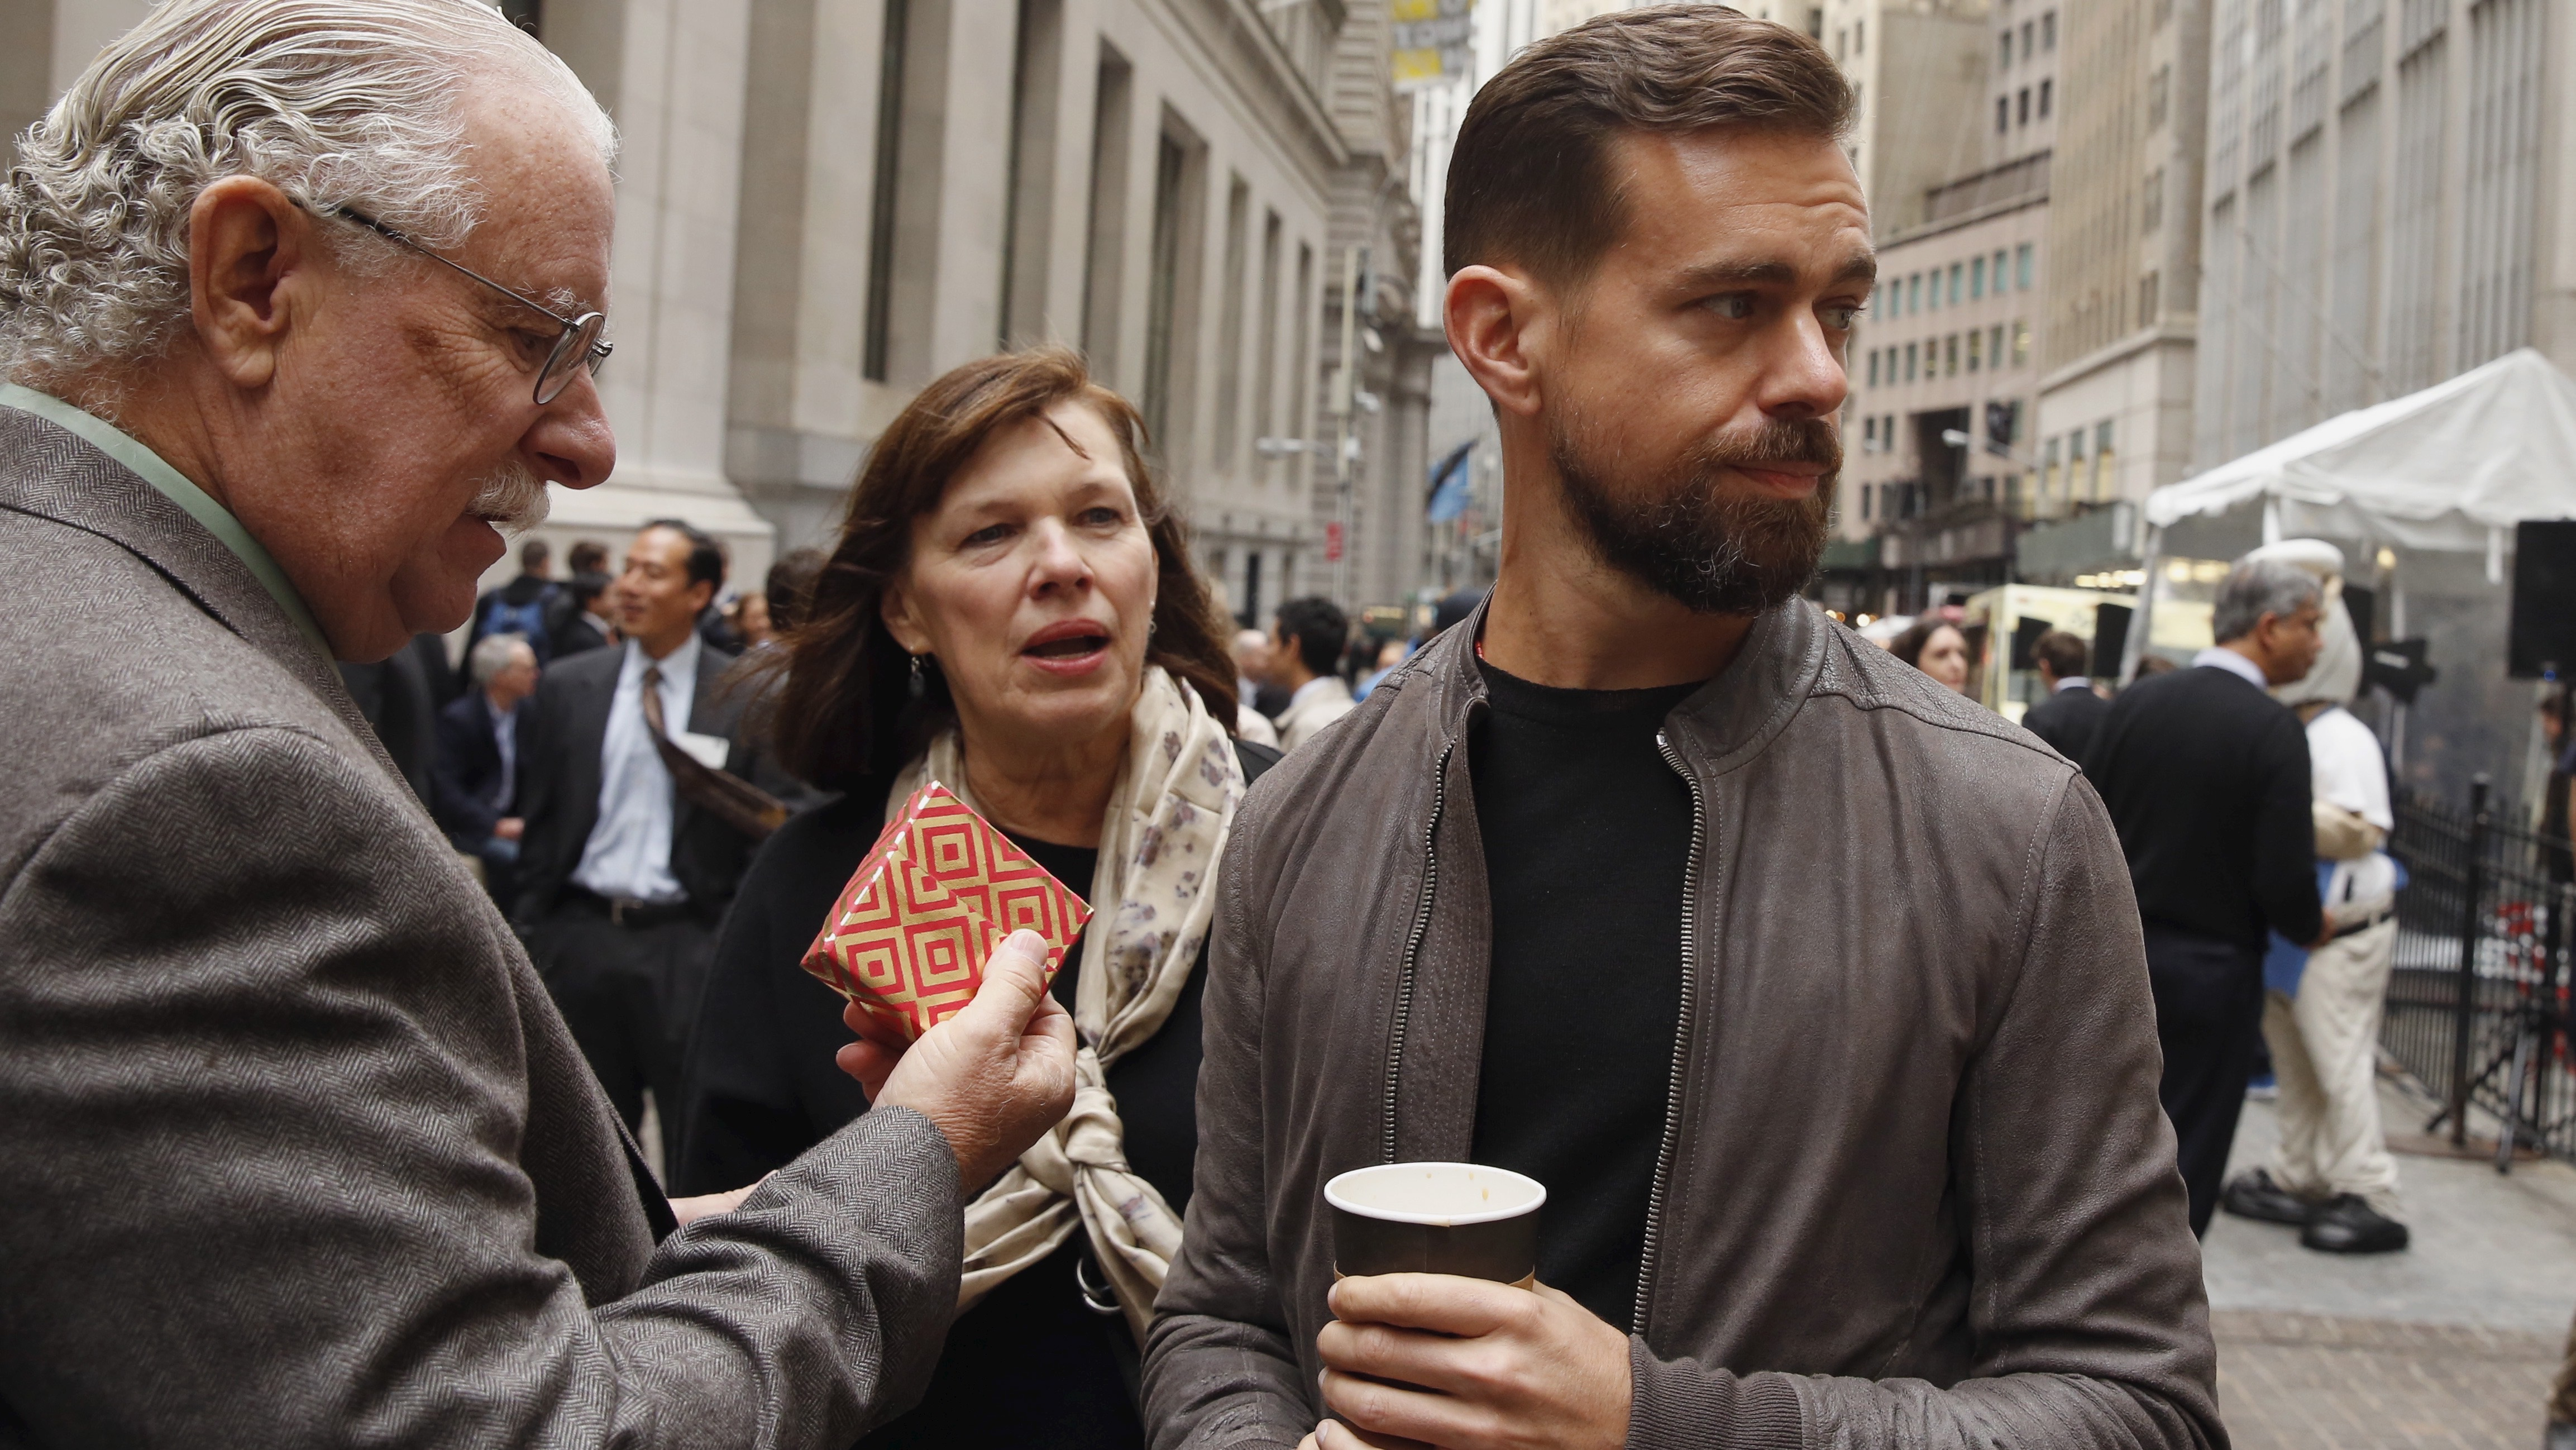 Jack Dorsey, CEO of Square and CEO of Twitter, stands with his parents Marcia and Tim Dorsey while waiting for an event outside of the New York Stock Exchange to celebrate the IPO of Square Inc., in New York November 19, 2015. Square Inc priced shares at $9 for its initial public offering, about 25 percent less than it had hoped, as it struggled to win over investors skeptical about its business and valuation before trading begins on Thursday.  REUTERS/Lucas Jackson - RTS7Z2L